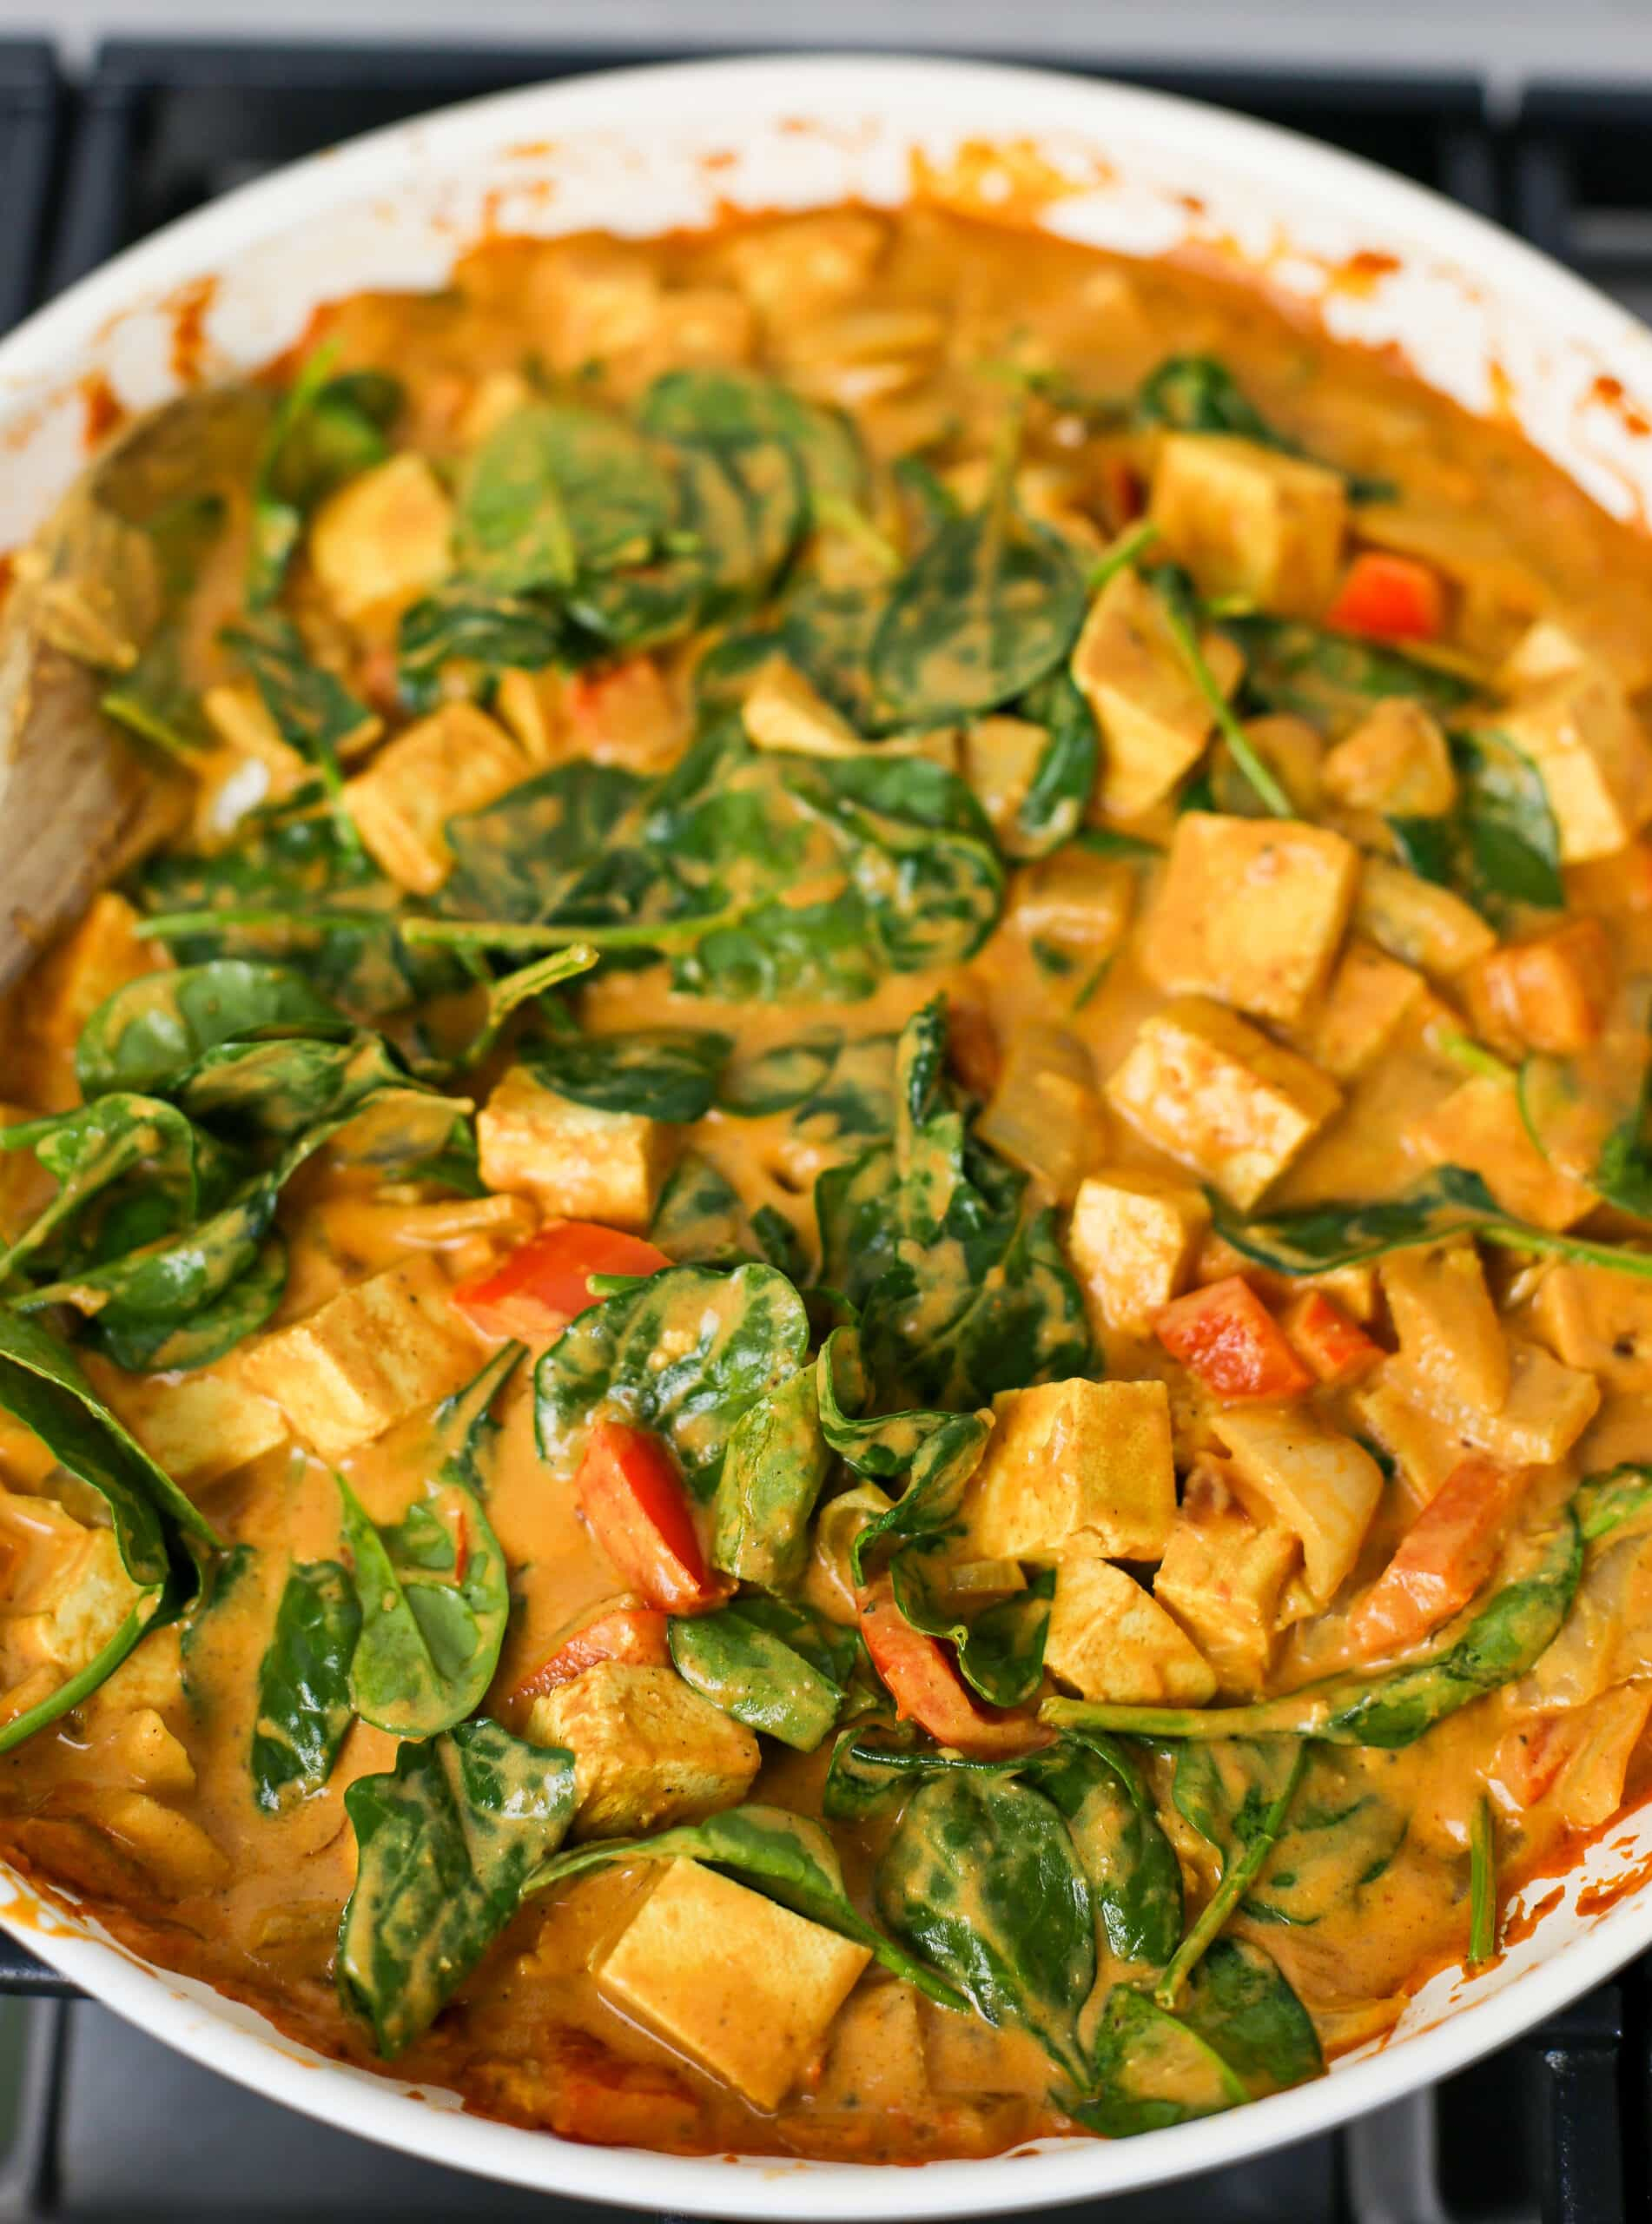 Creamy tofu coconut curry with wilted spinach in a large skillet.